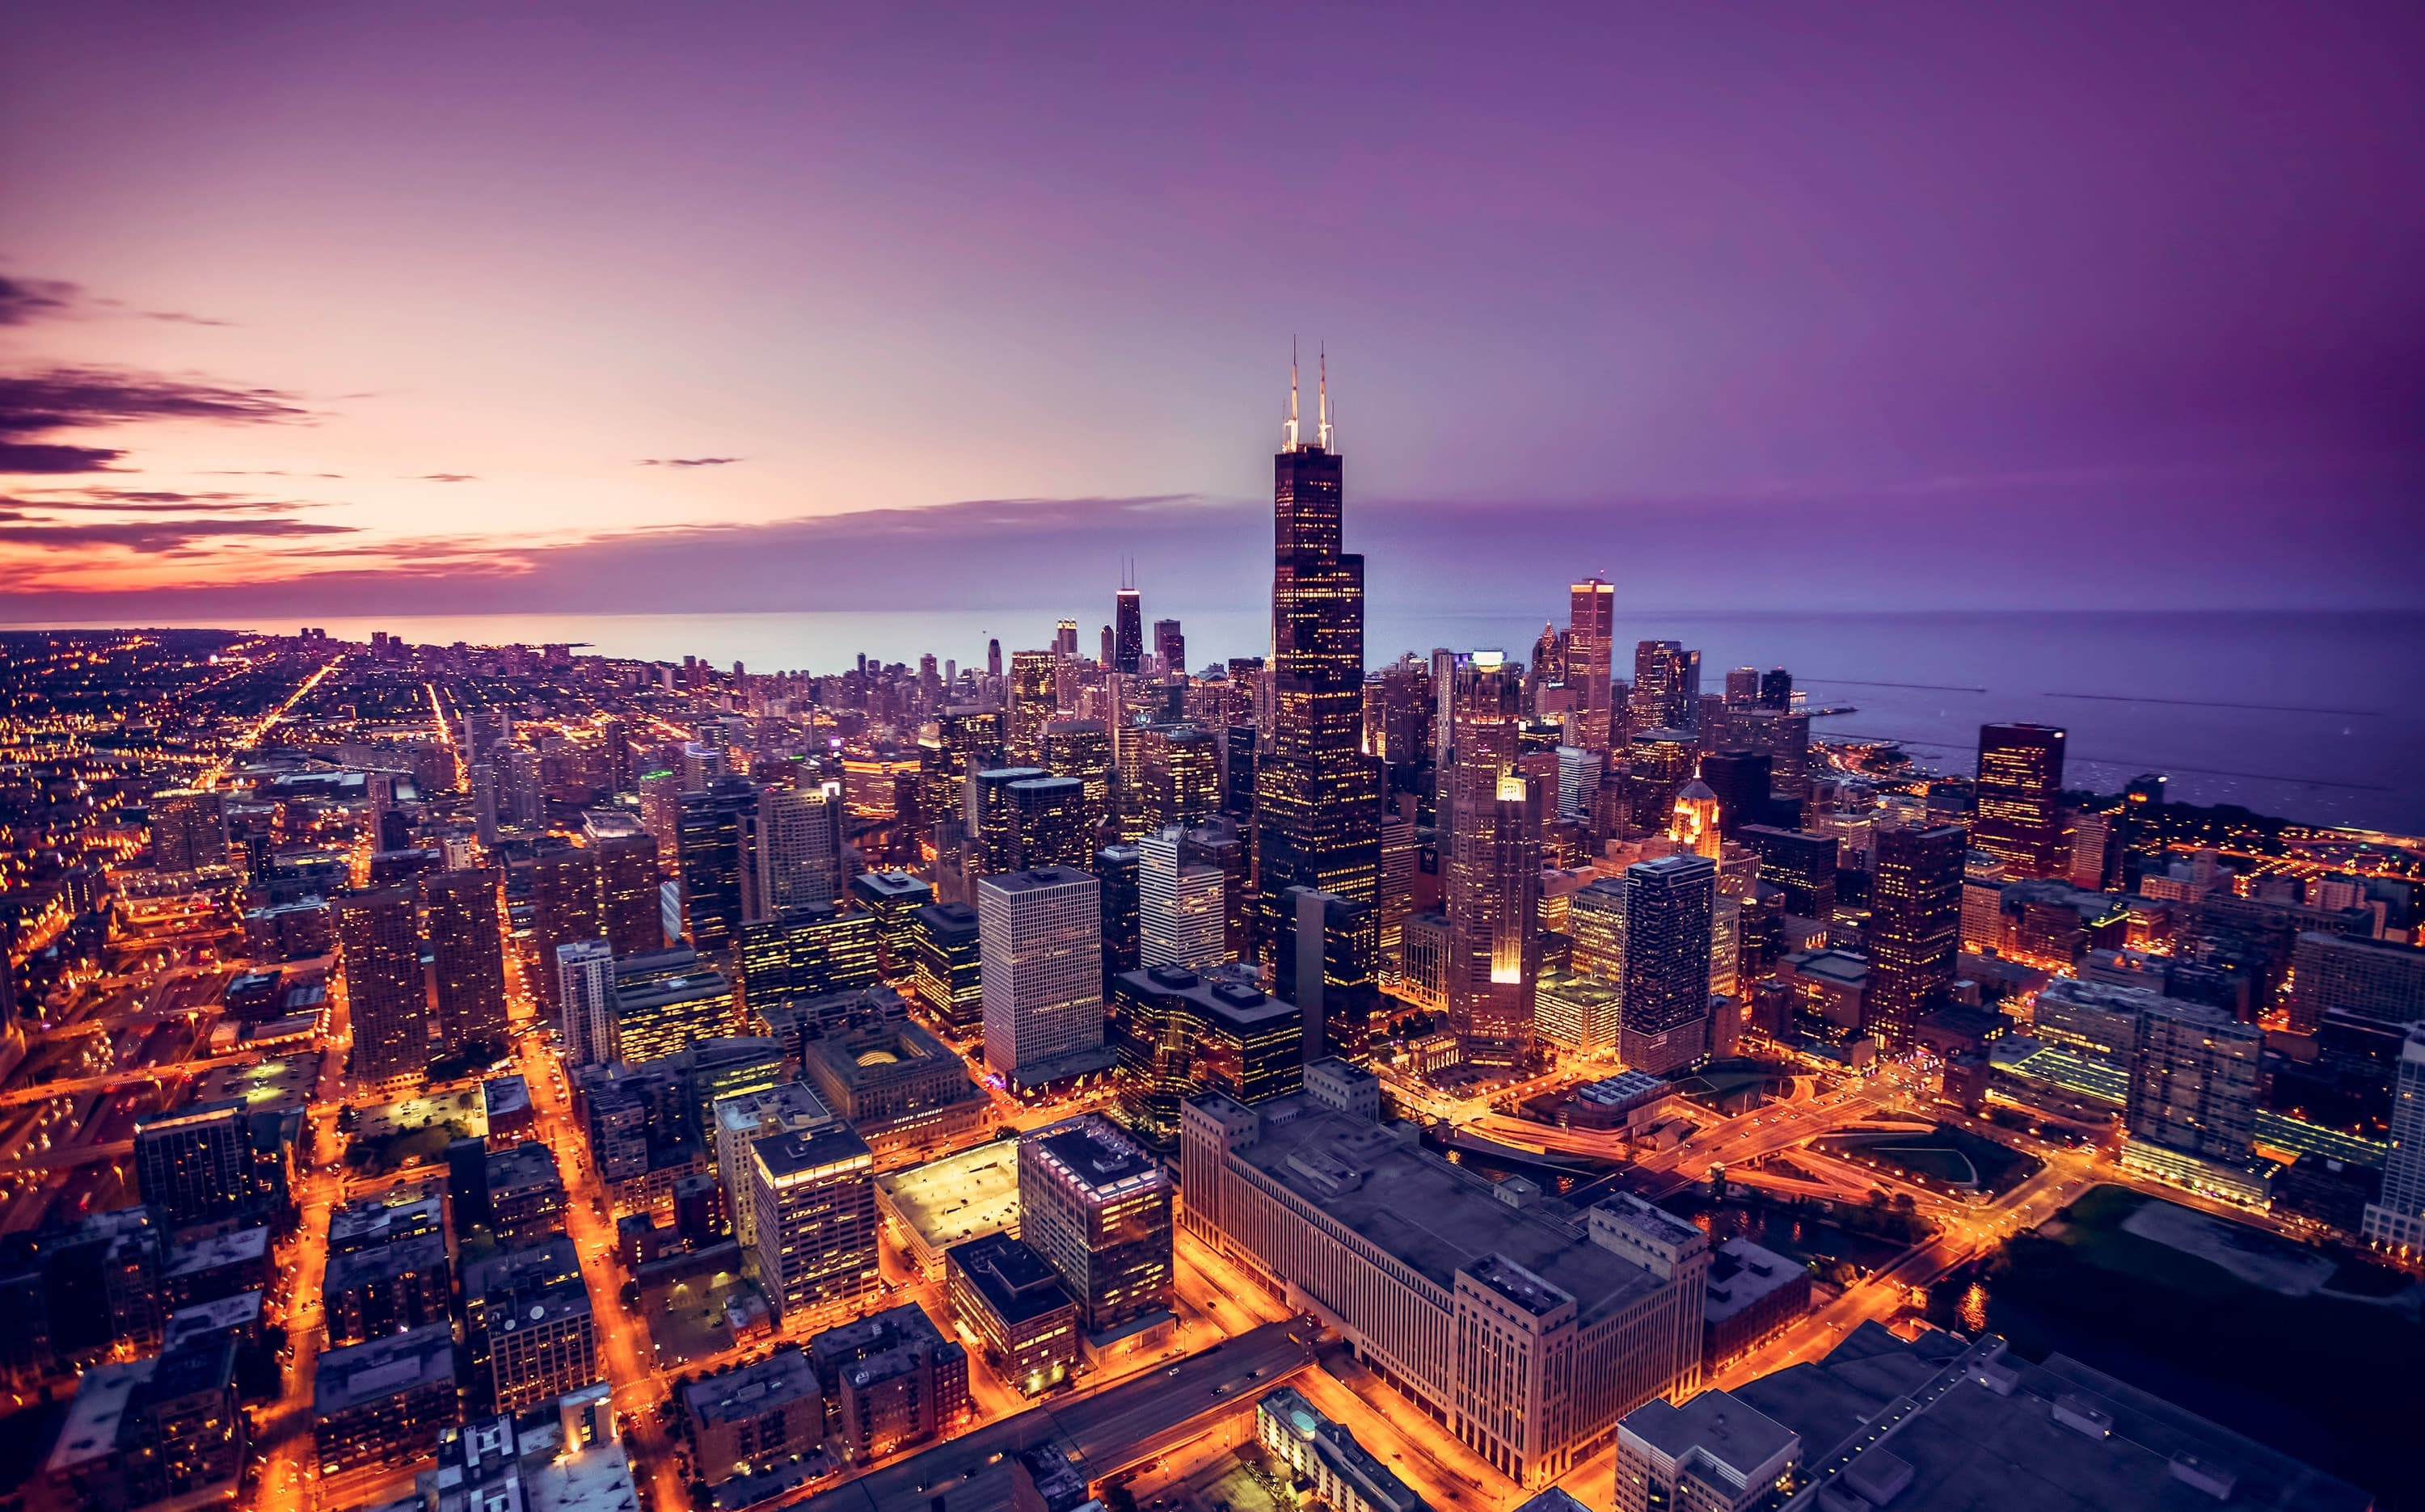 A night time view of the city of Chicago sky line